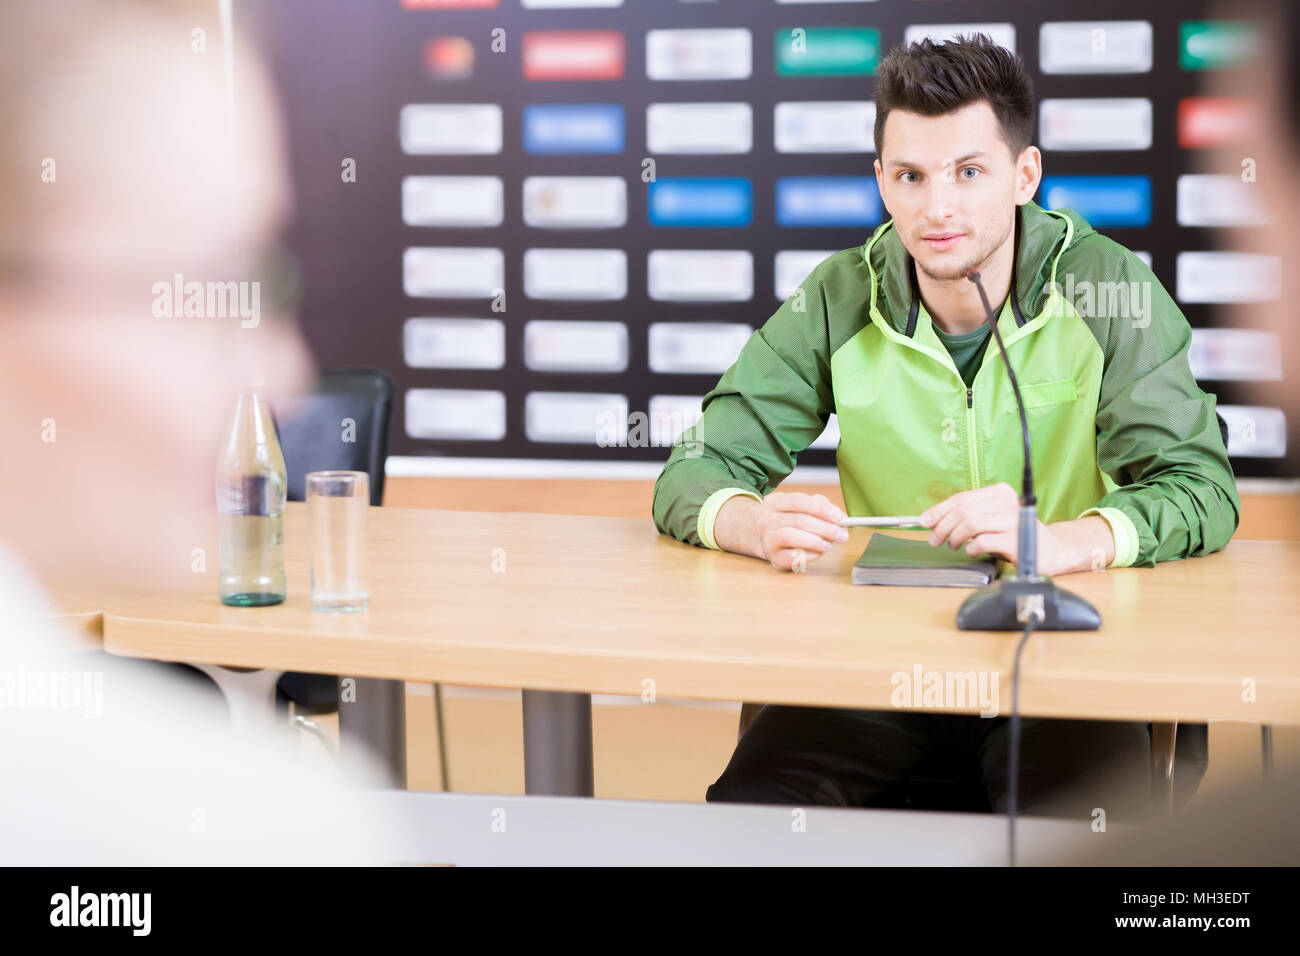 Famous Sportsman at Press Conference - Stock Image